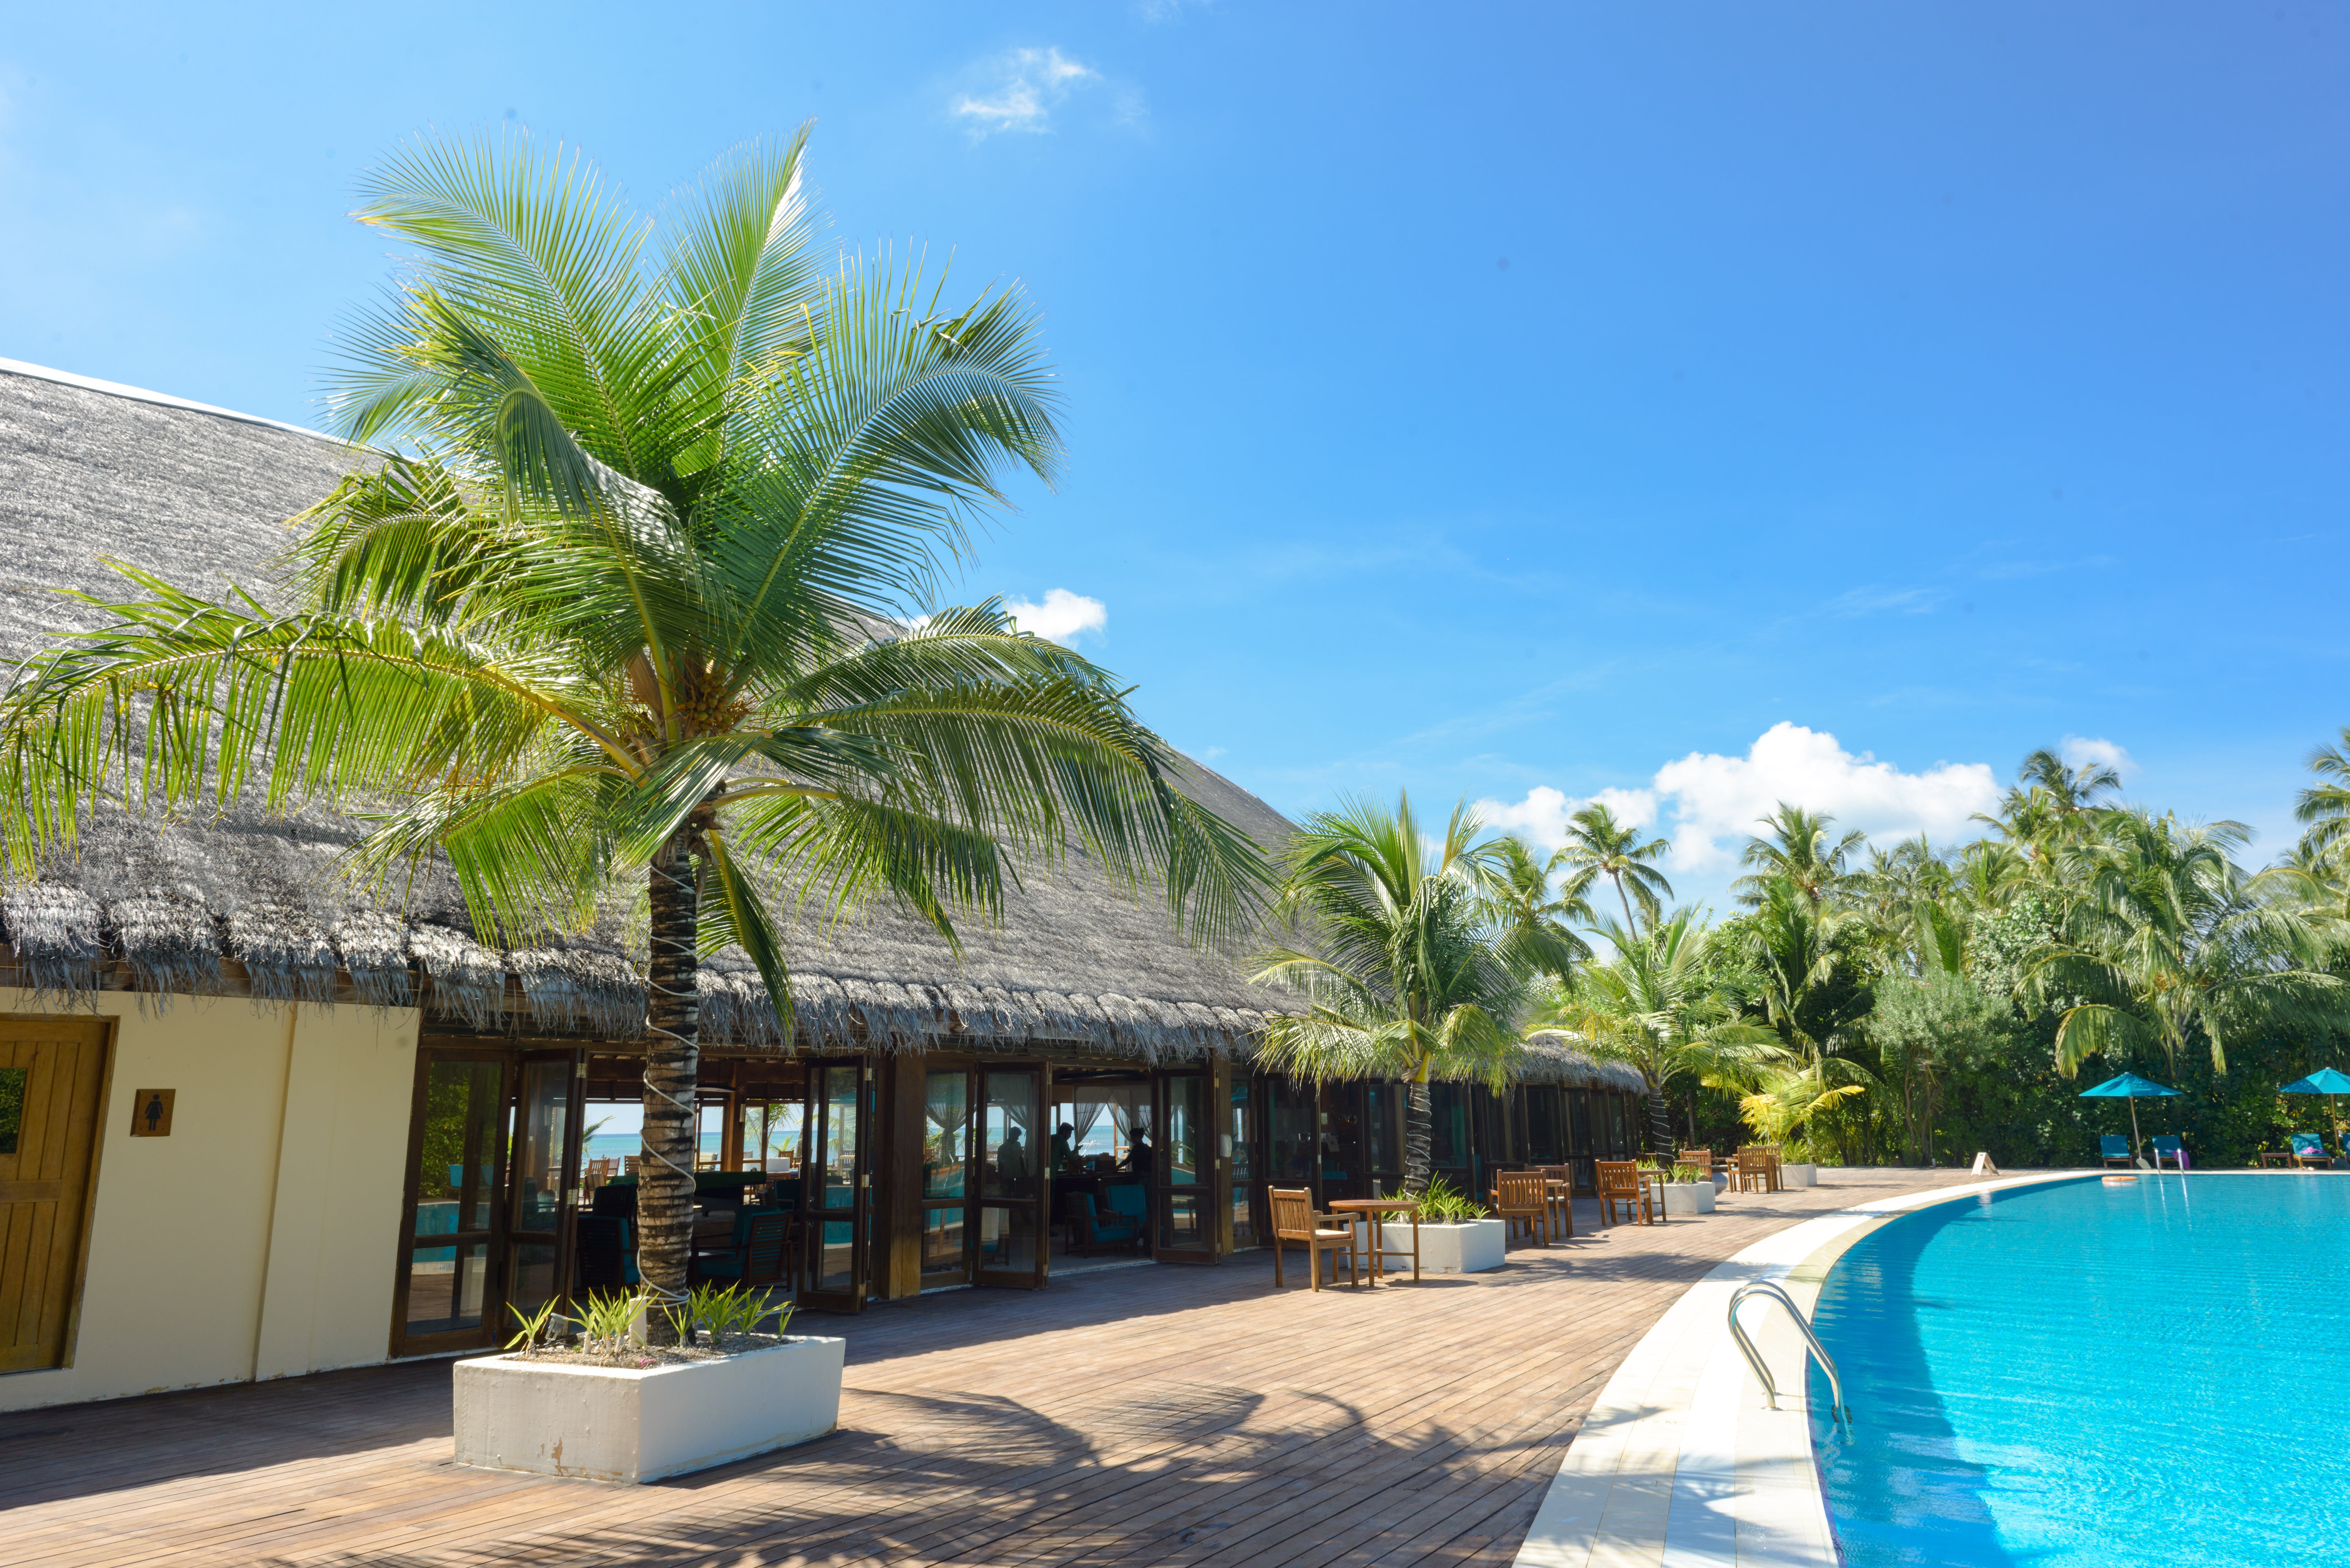 Swimming Pool Surrounded by Coconut Palms